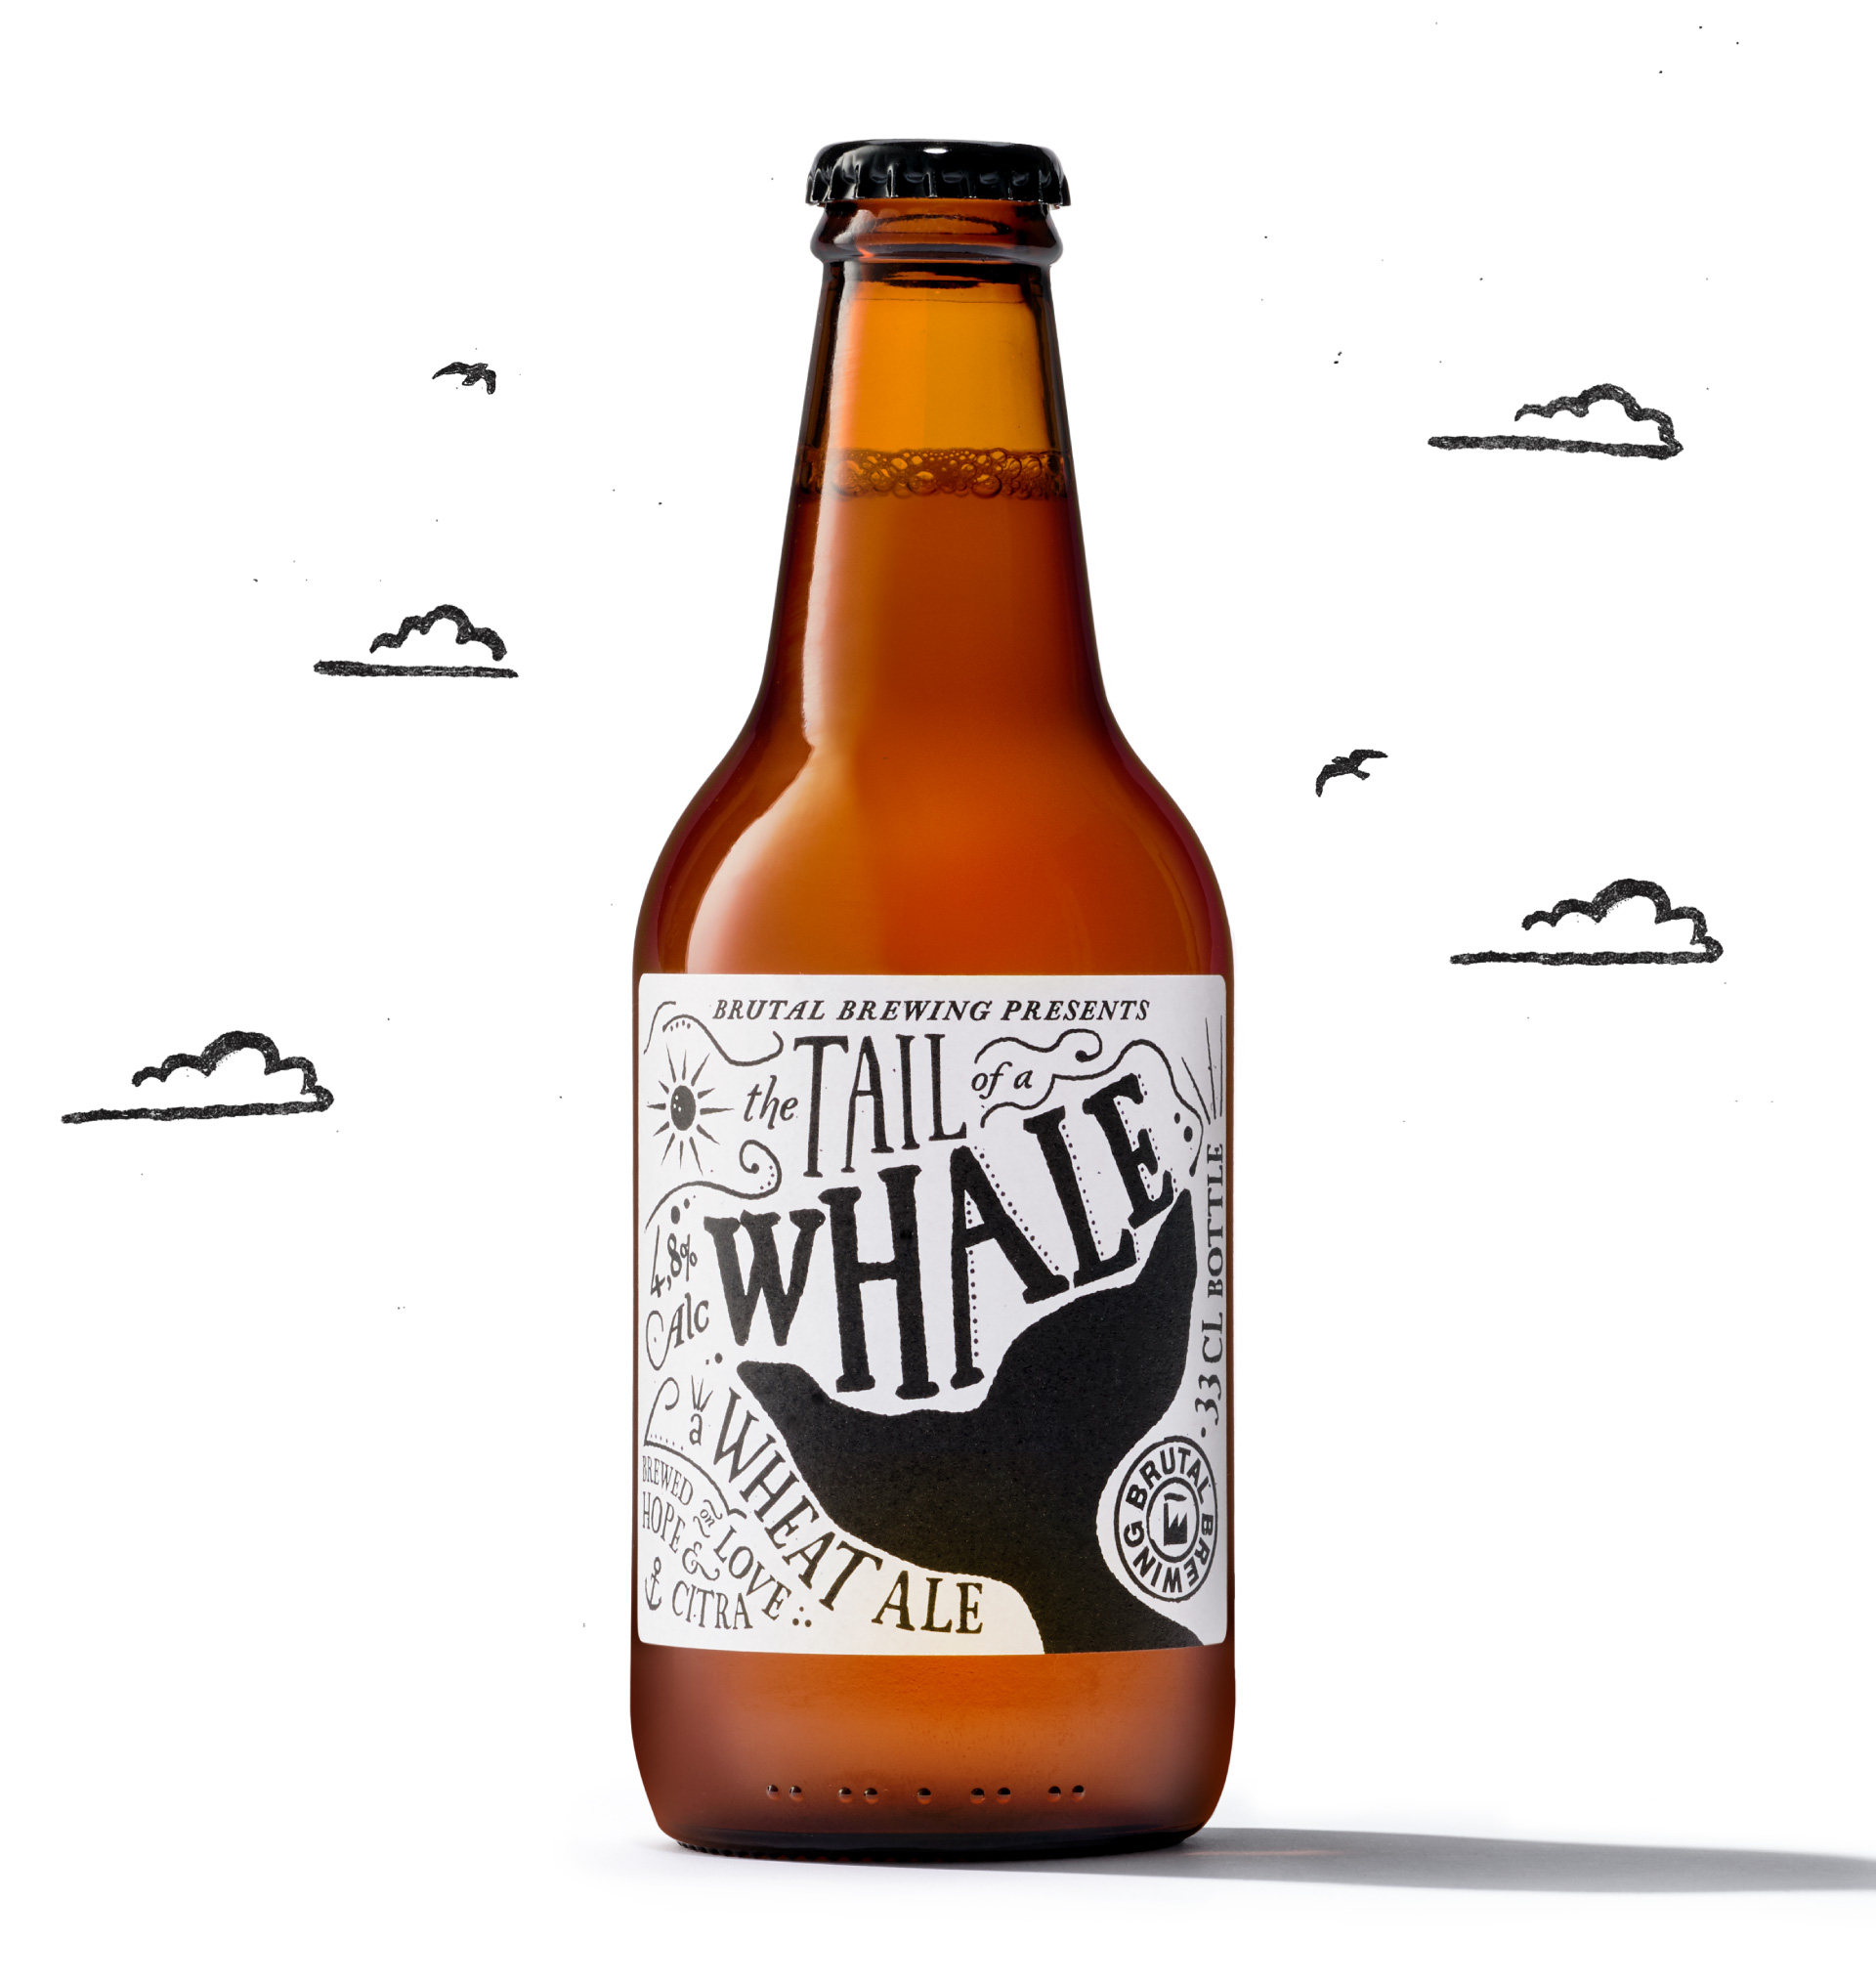 BrutalBrewing_tail_of_a_whale